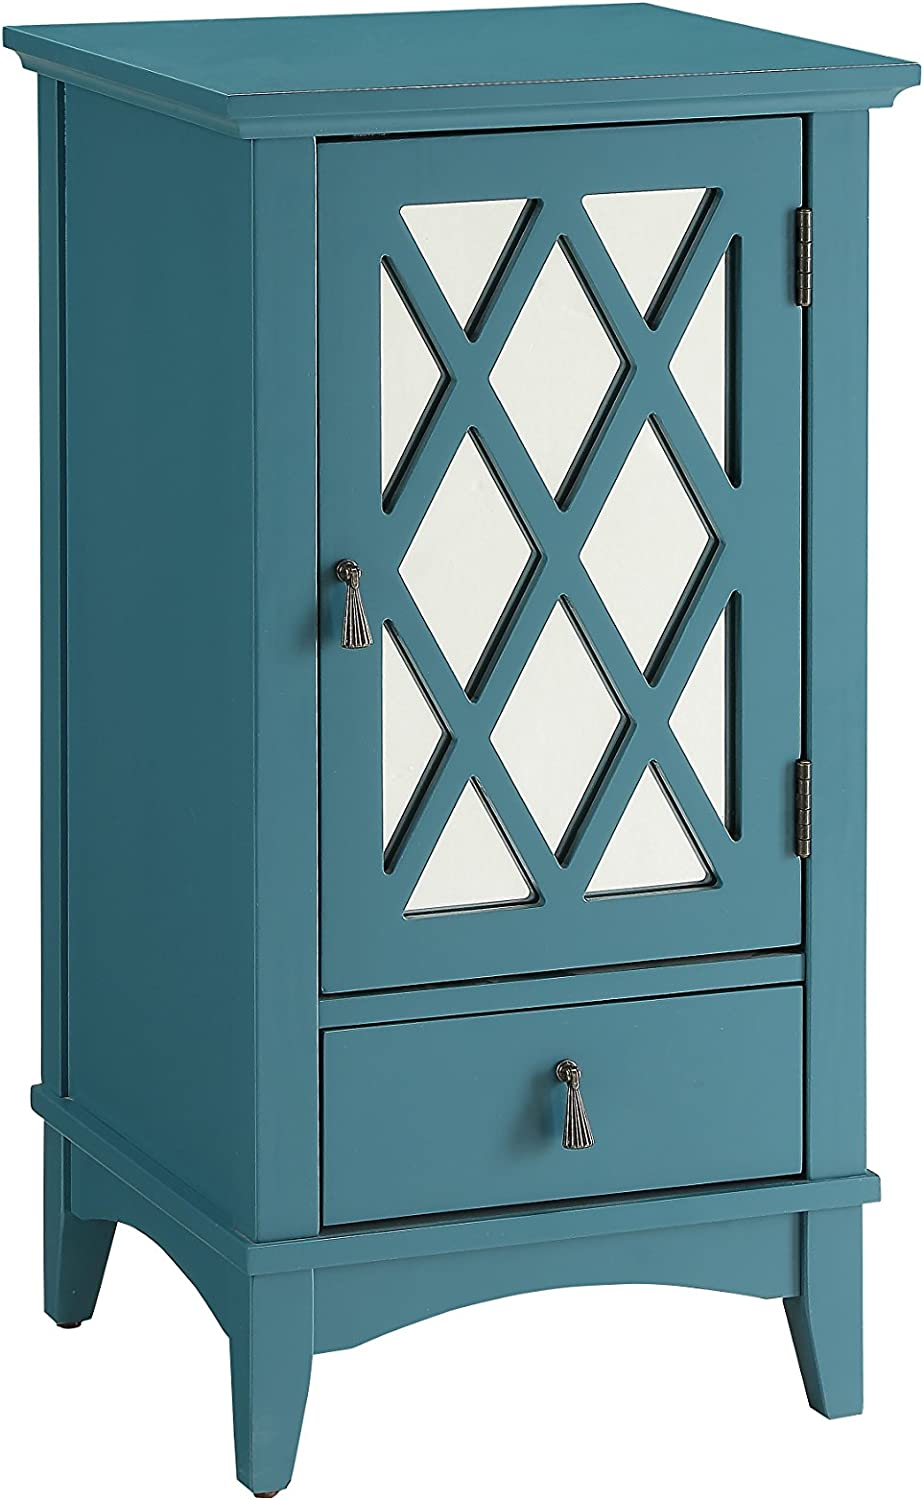 ACME Furniture Acme 97380 Ceara Floor Cabinet, Teal, One Size